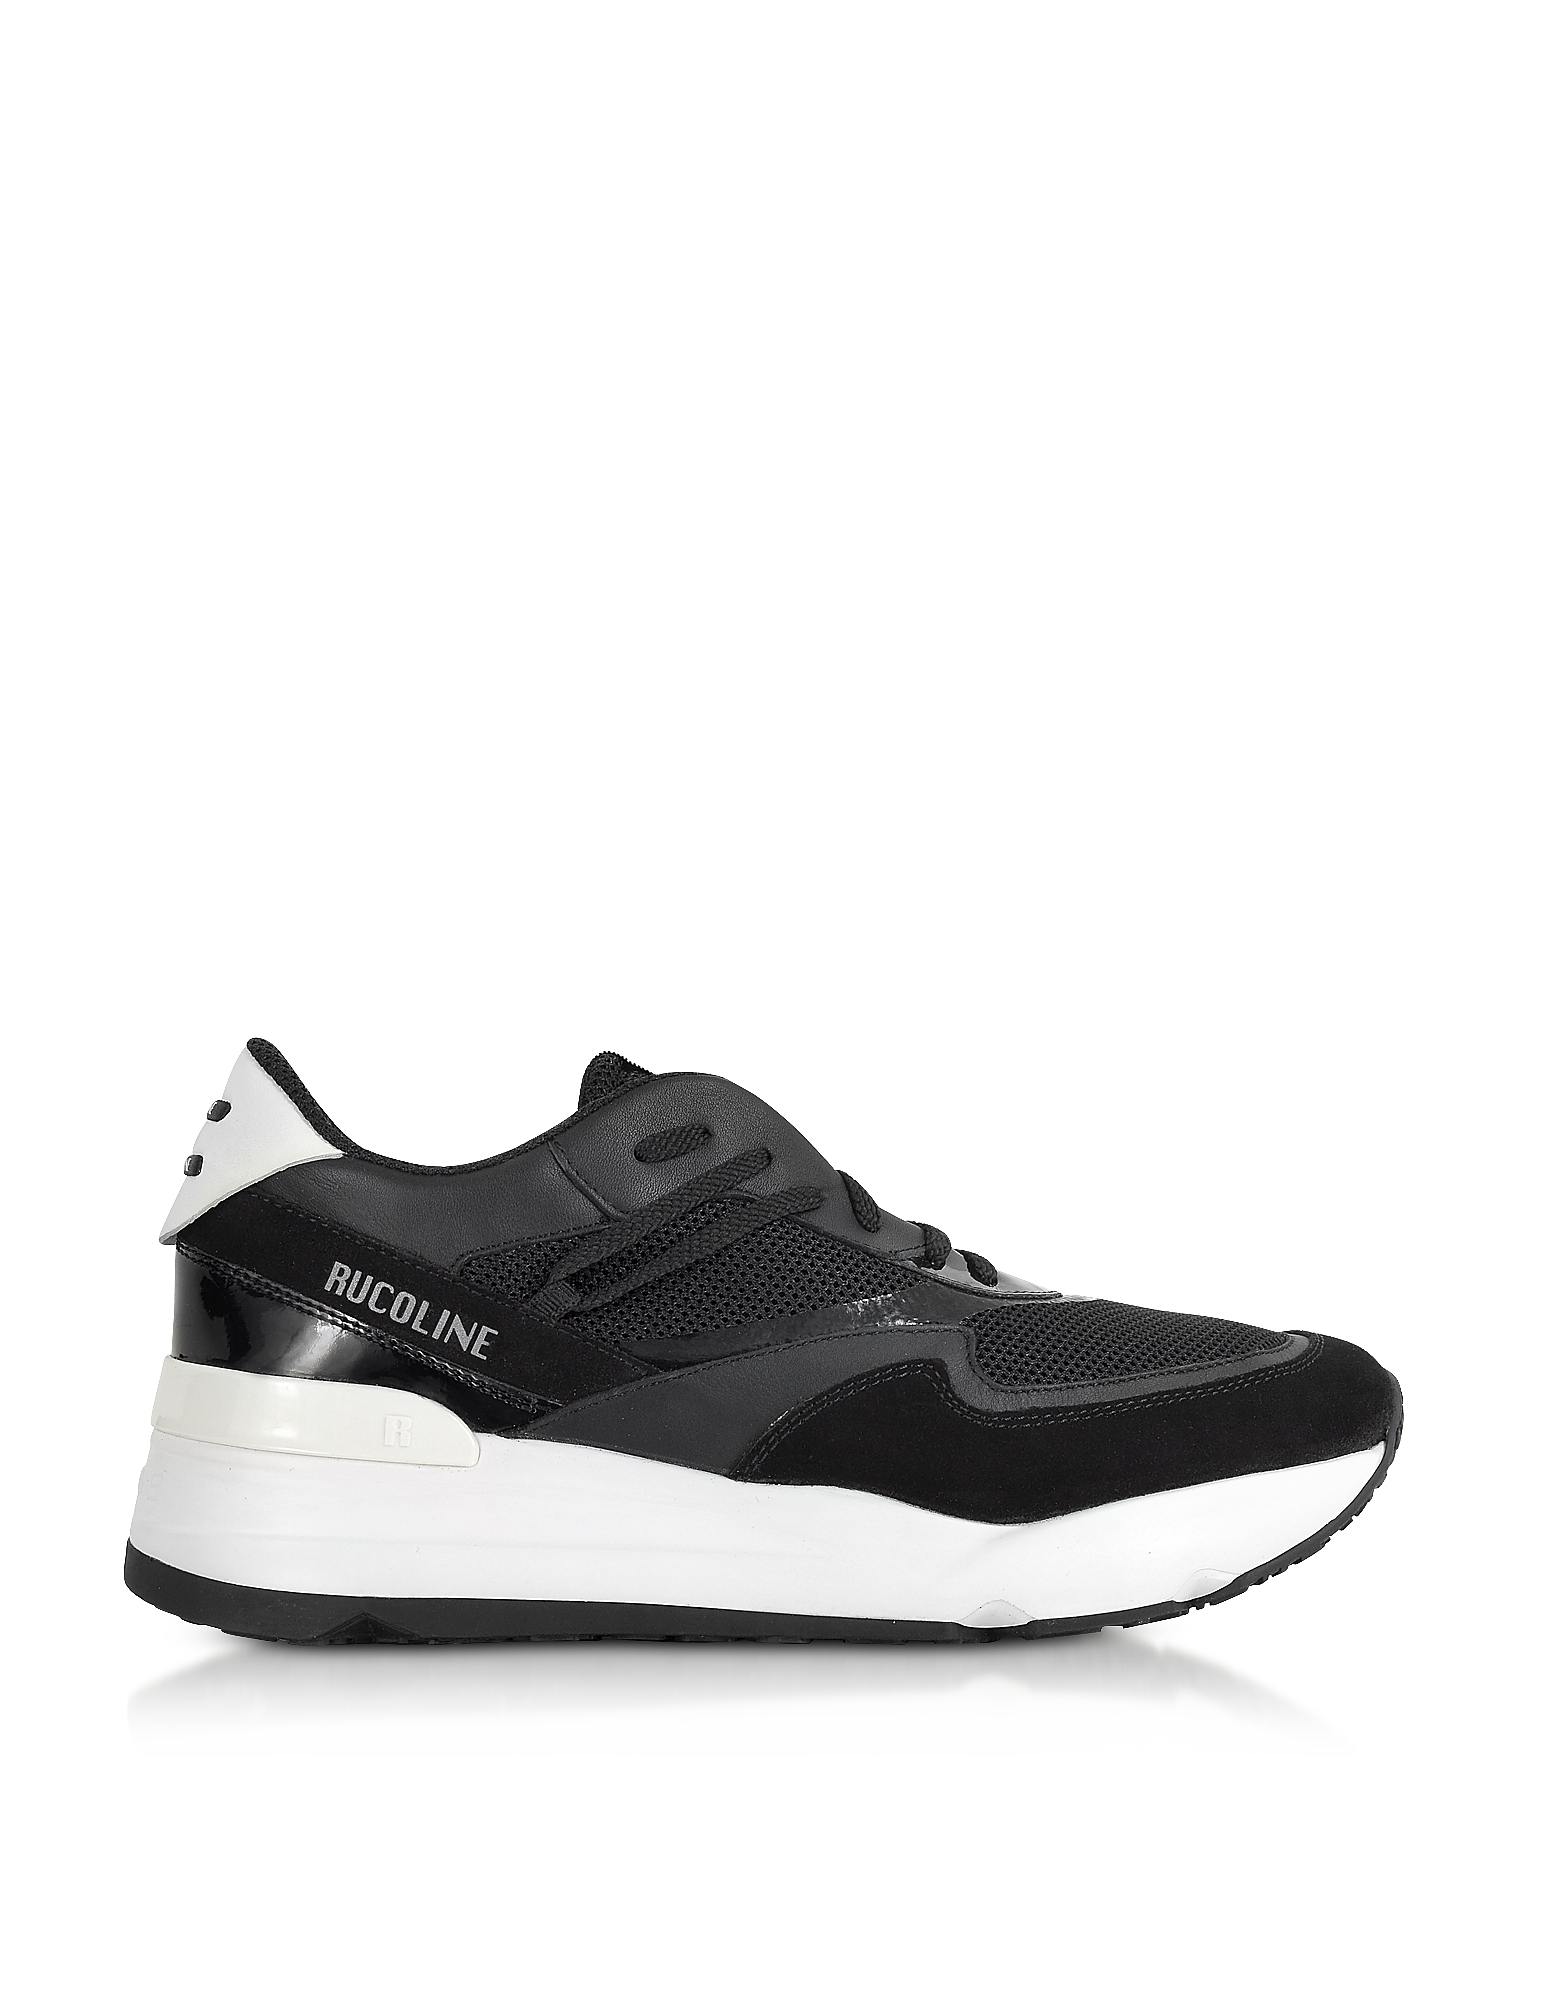 Rucoline Designer Shoes, Black Nylon and Leather R-Evolve Men's Sneakers